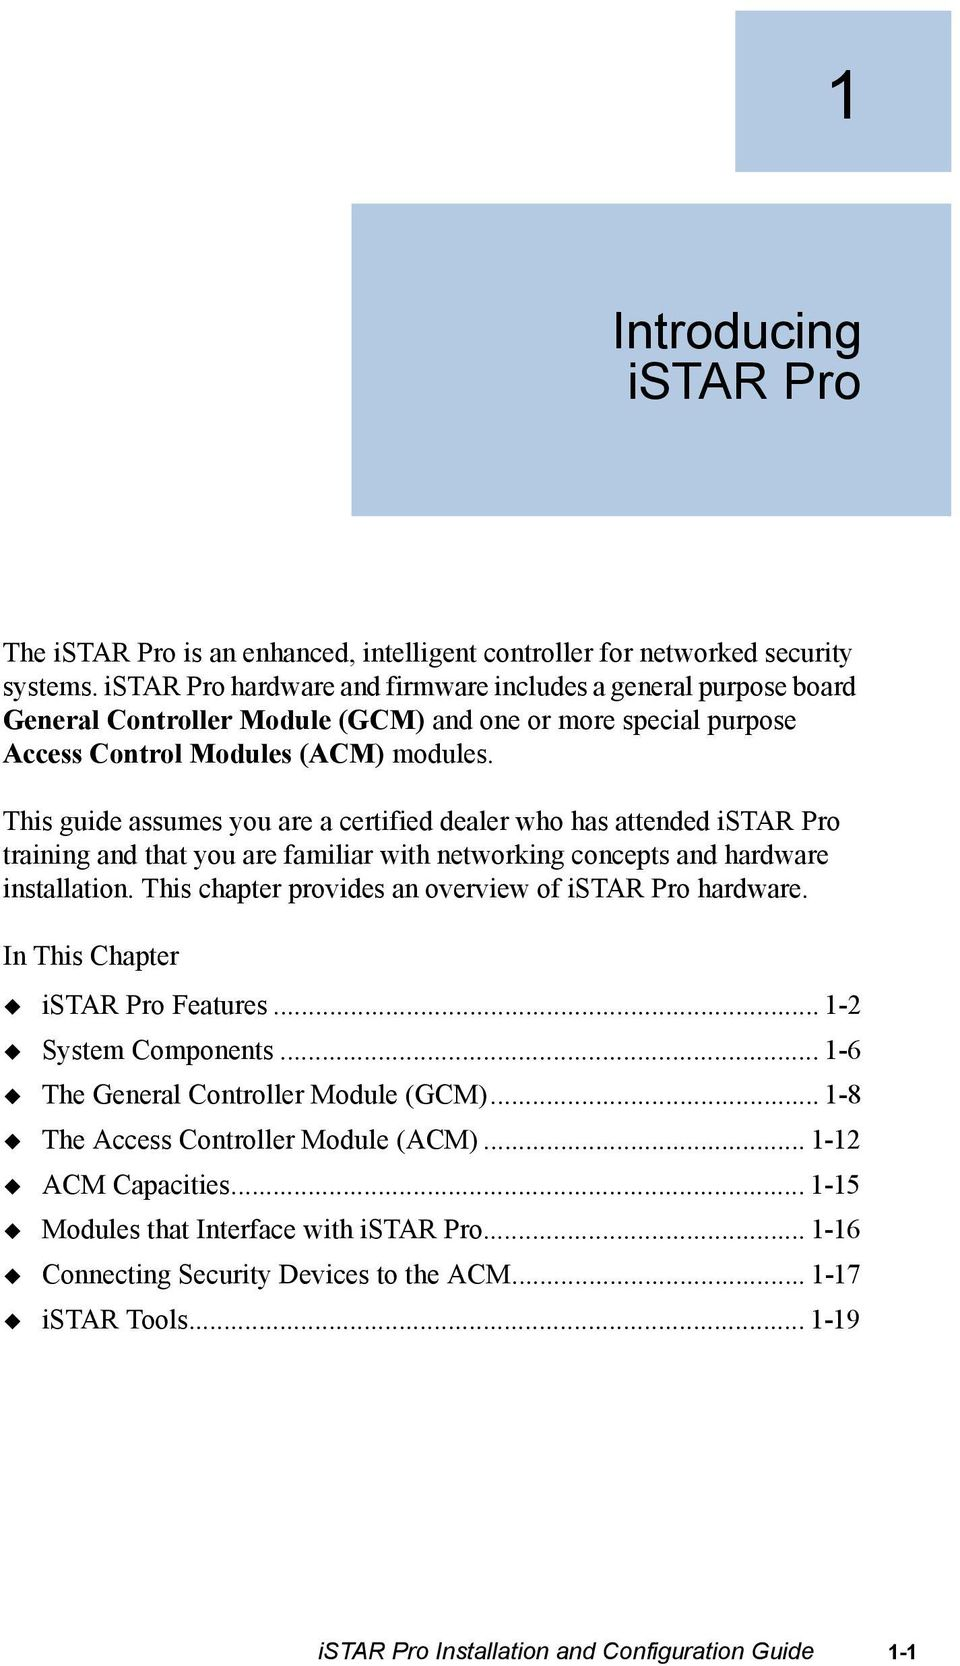 c cure istar pro installation and configuration guide revision g6 this guide assumes you are a certified dealer who has attended istar pro training and that